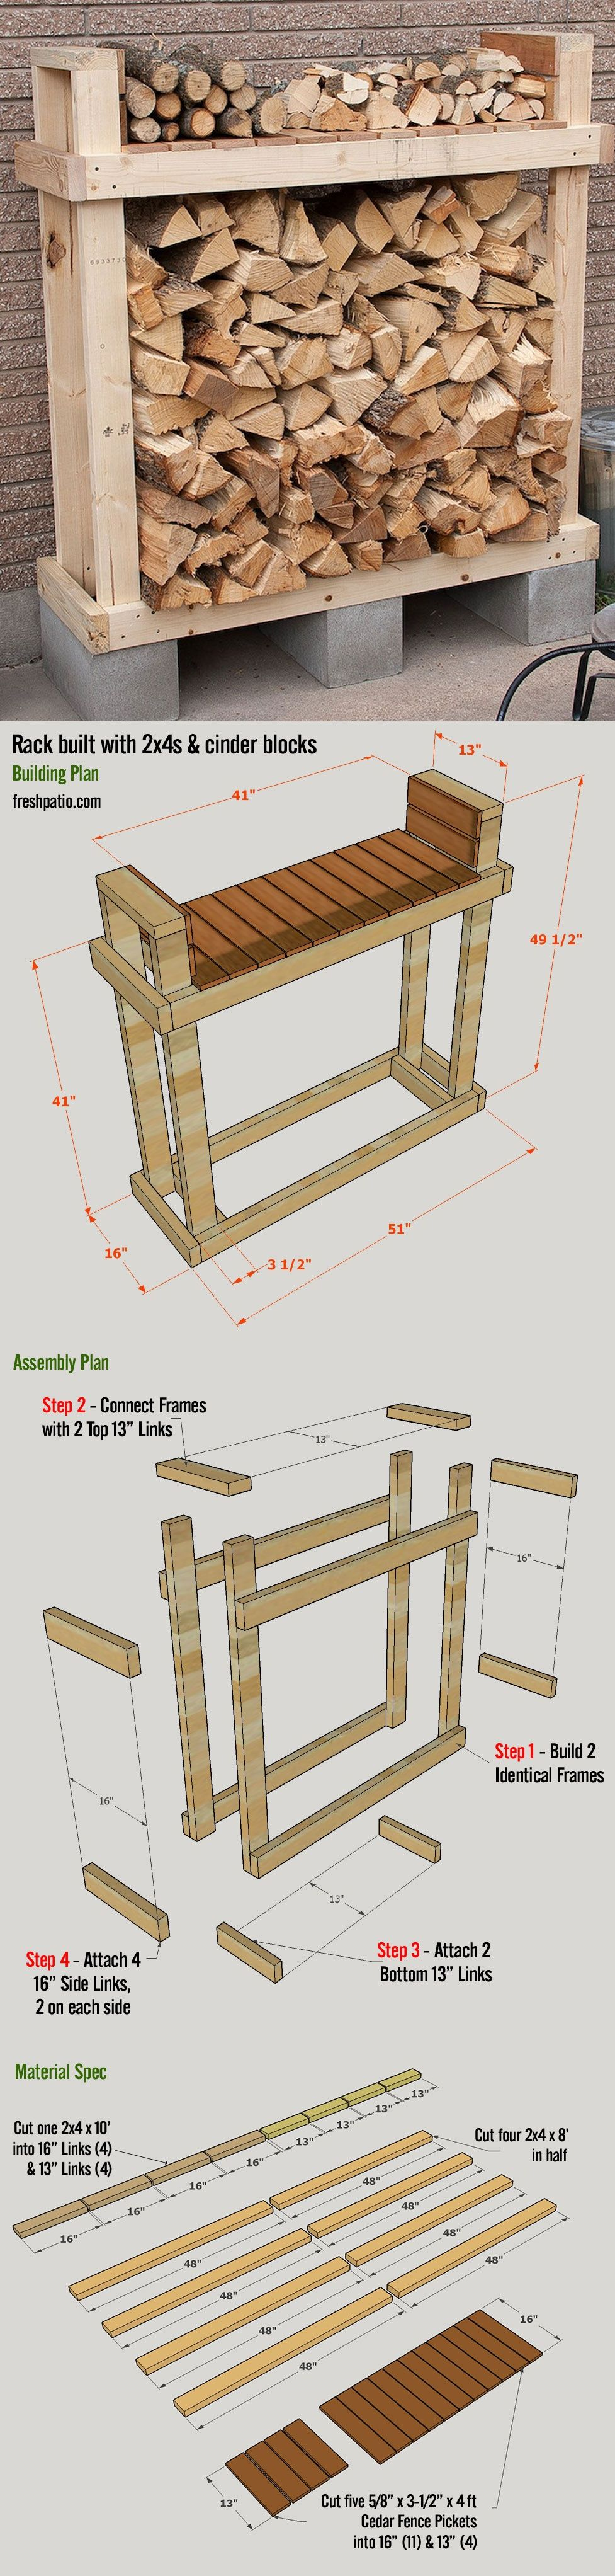 Free Firewood Rack Plan - build it for $42 (including lumber, Cinder blocks  and